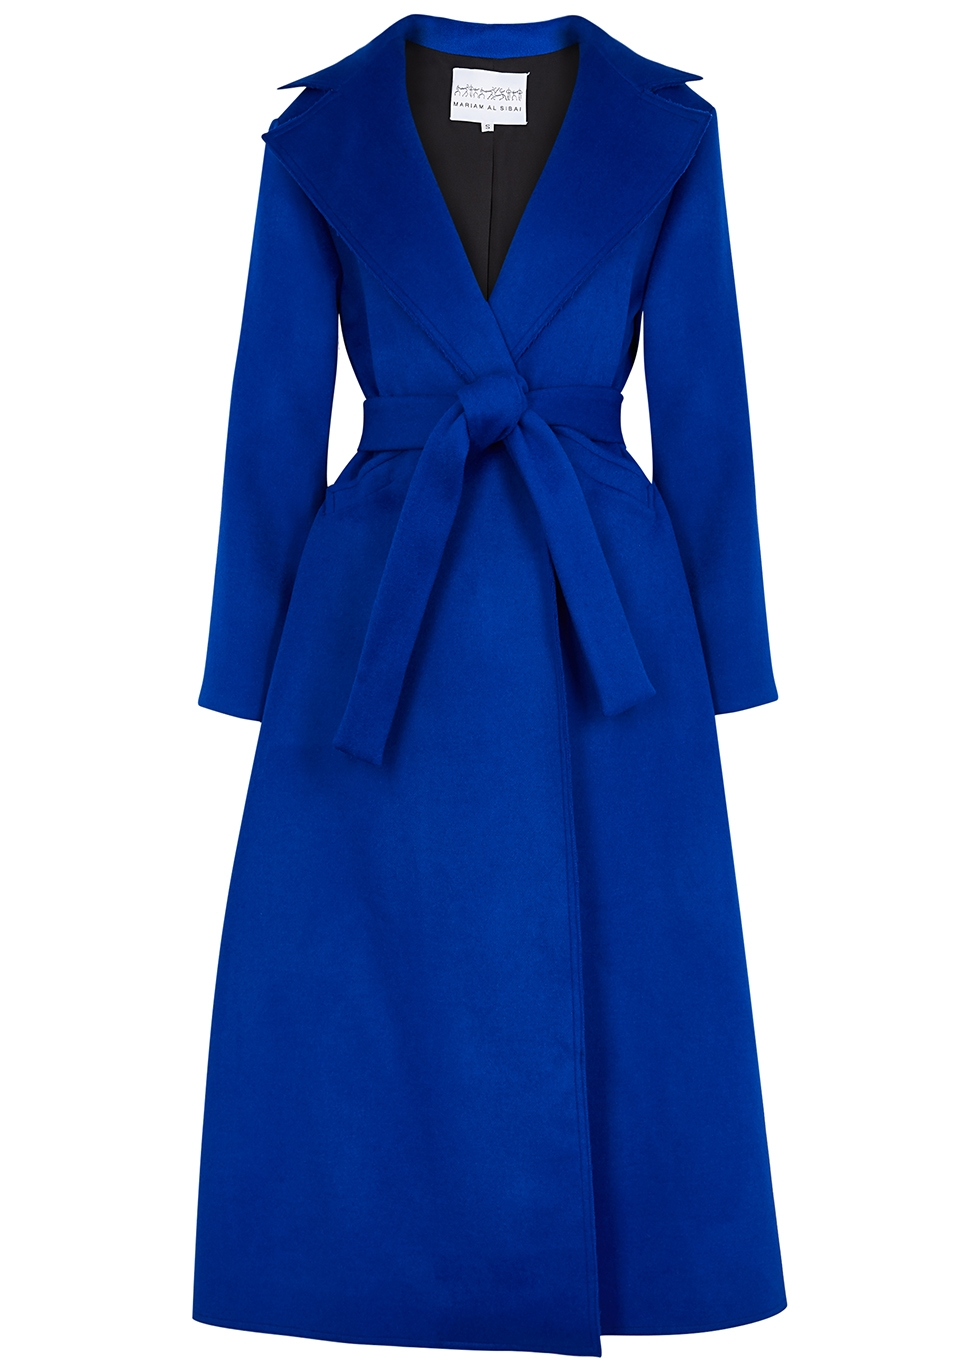 Electric Blue Wool Felt Coat by Mariam Al Sibai